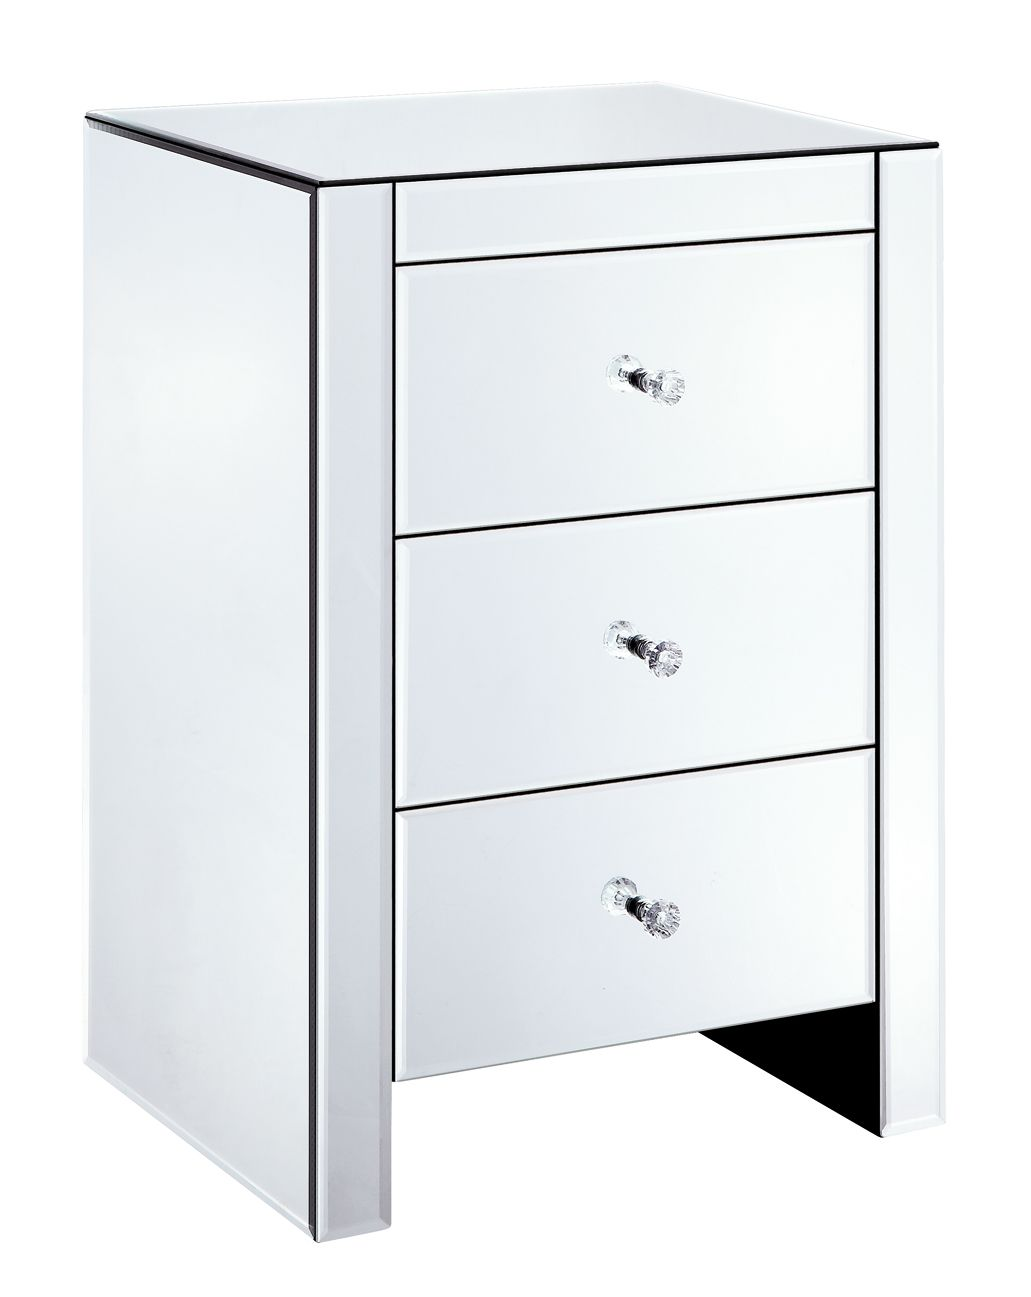 Mirrored Bedside Table With Drawers: MB01BDI Mirrored Bedside Table With 3 Drawers